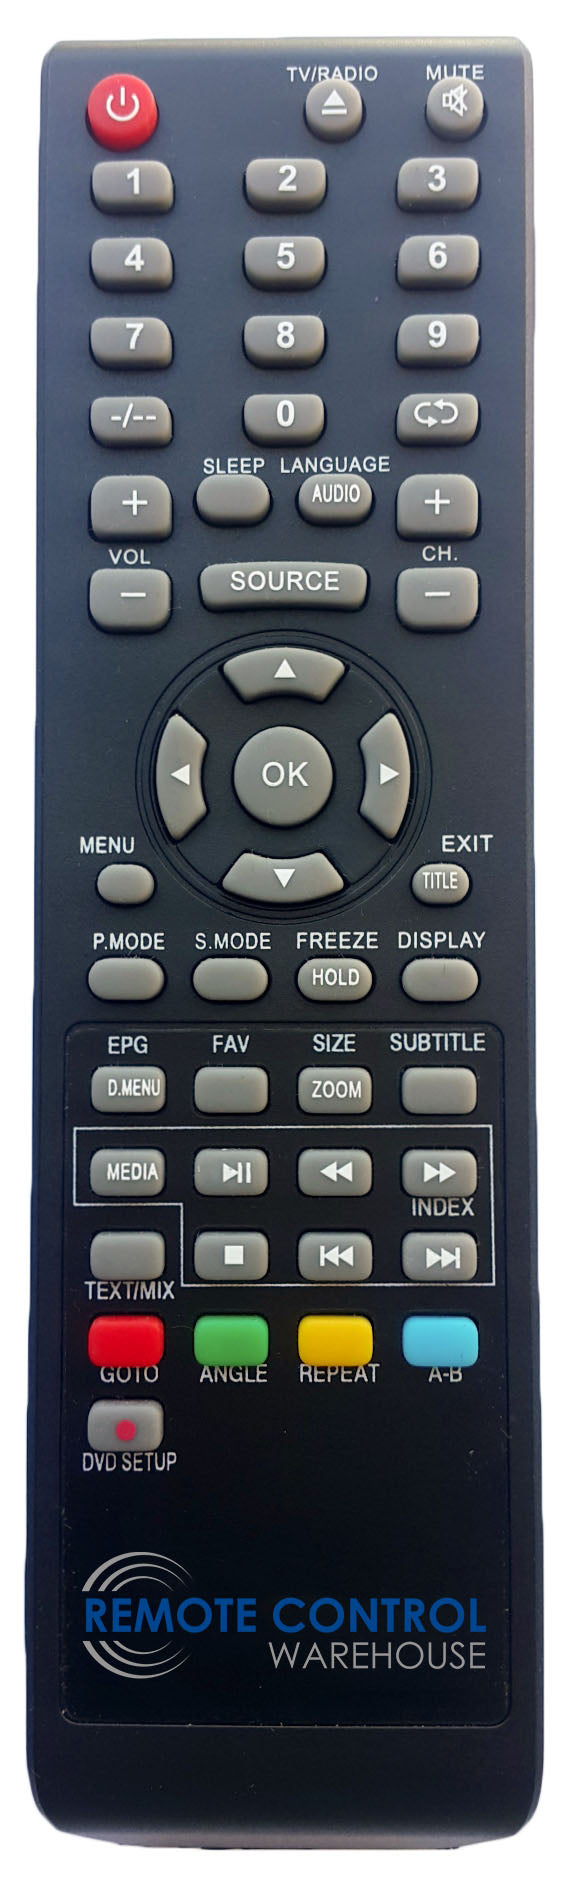 REPLACEMENT BAUHN REMOTE CONTROL SUBSTITUTE  ATV-24LEC1  ATV24LEC1  LCD TV - Remote Control Warehouse